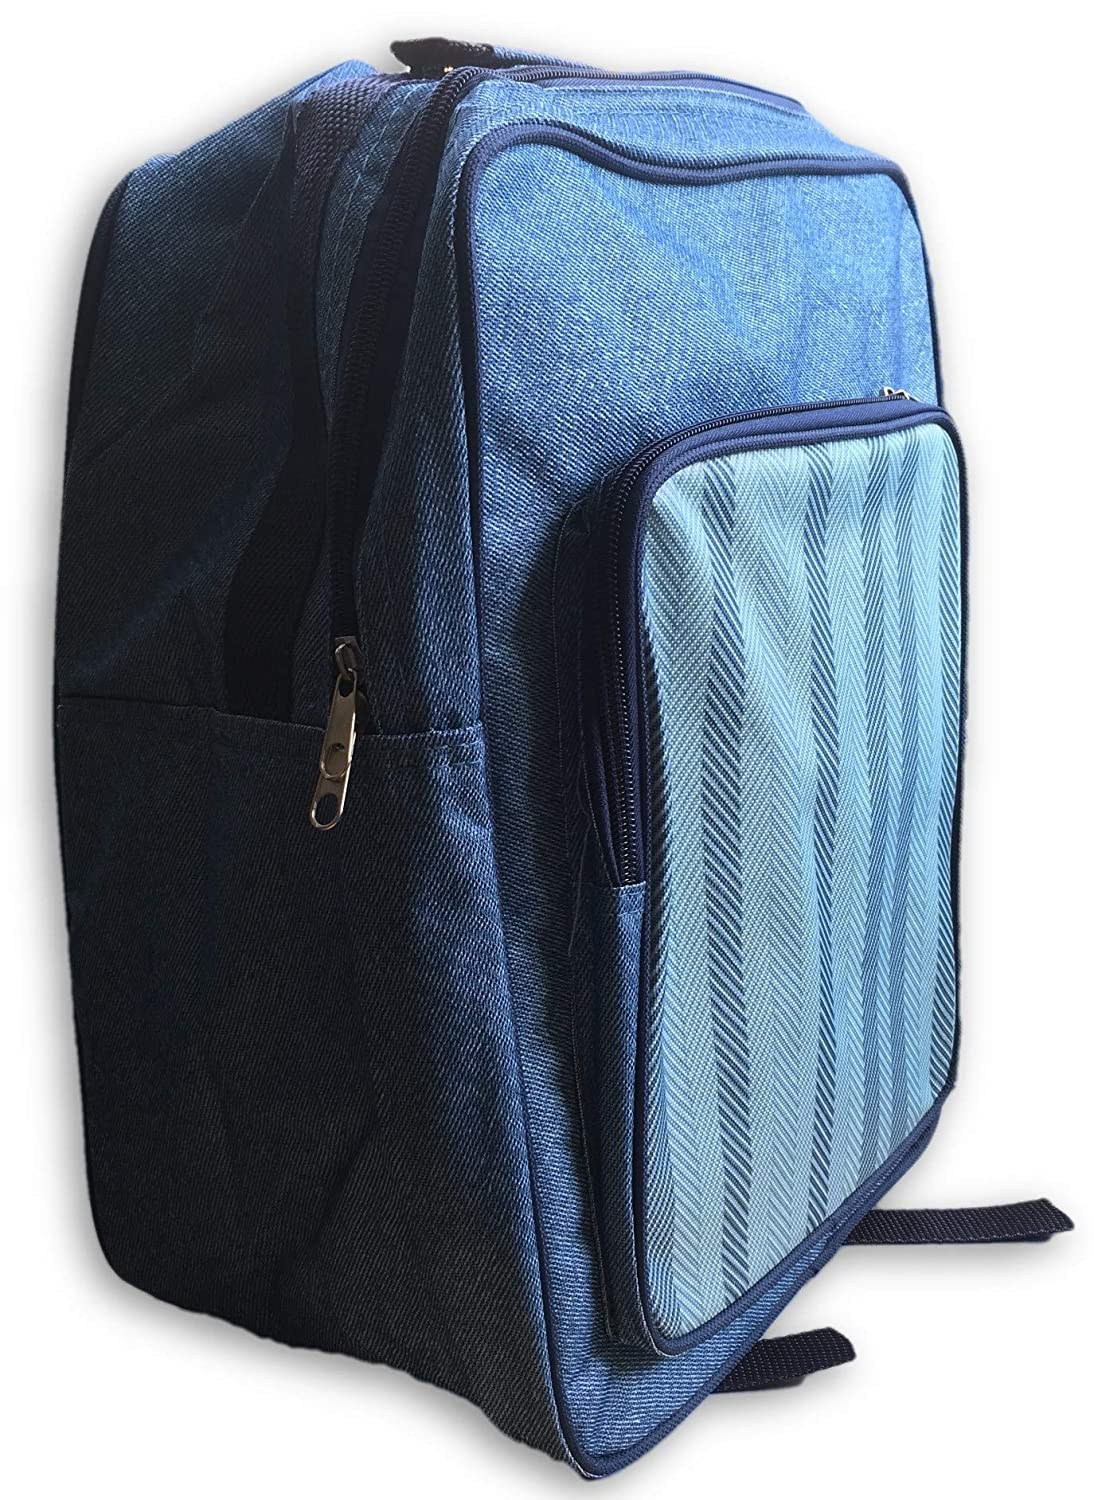 Al Fresco 17L Backpack Rucksack Cooler Bag, Denim Blue, 27x18x35cm, HWP163012 Beamfeature